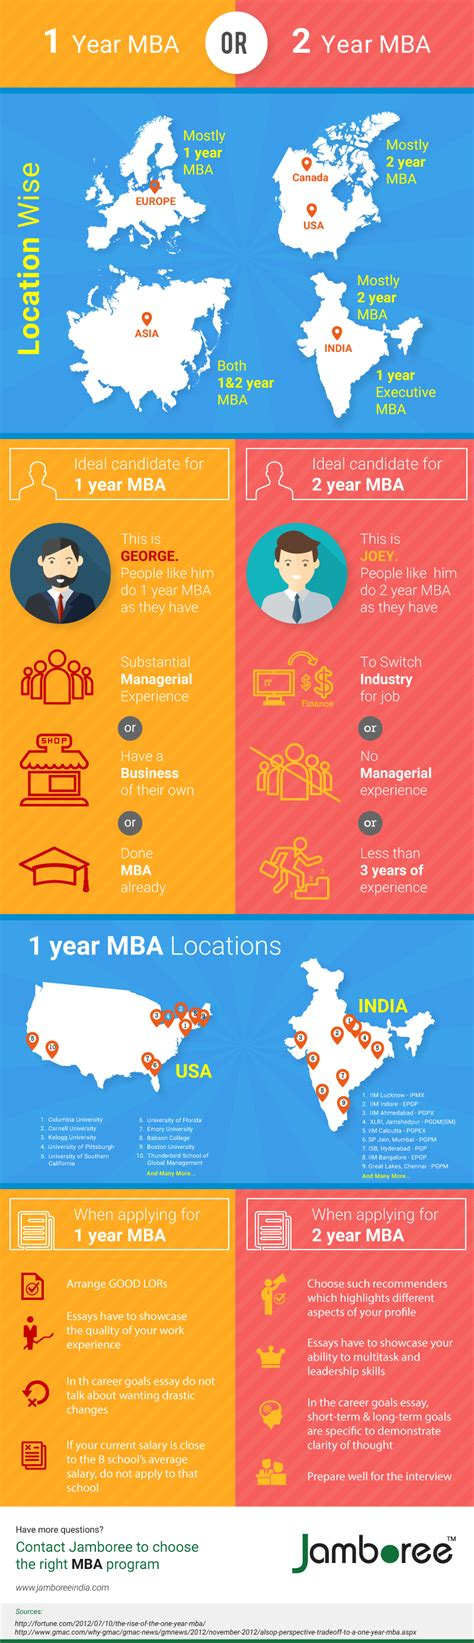 Year Mba by 1 Year Vs 2 Year Mba Jamboree India